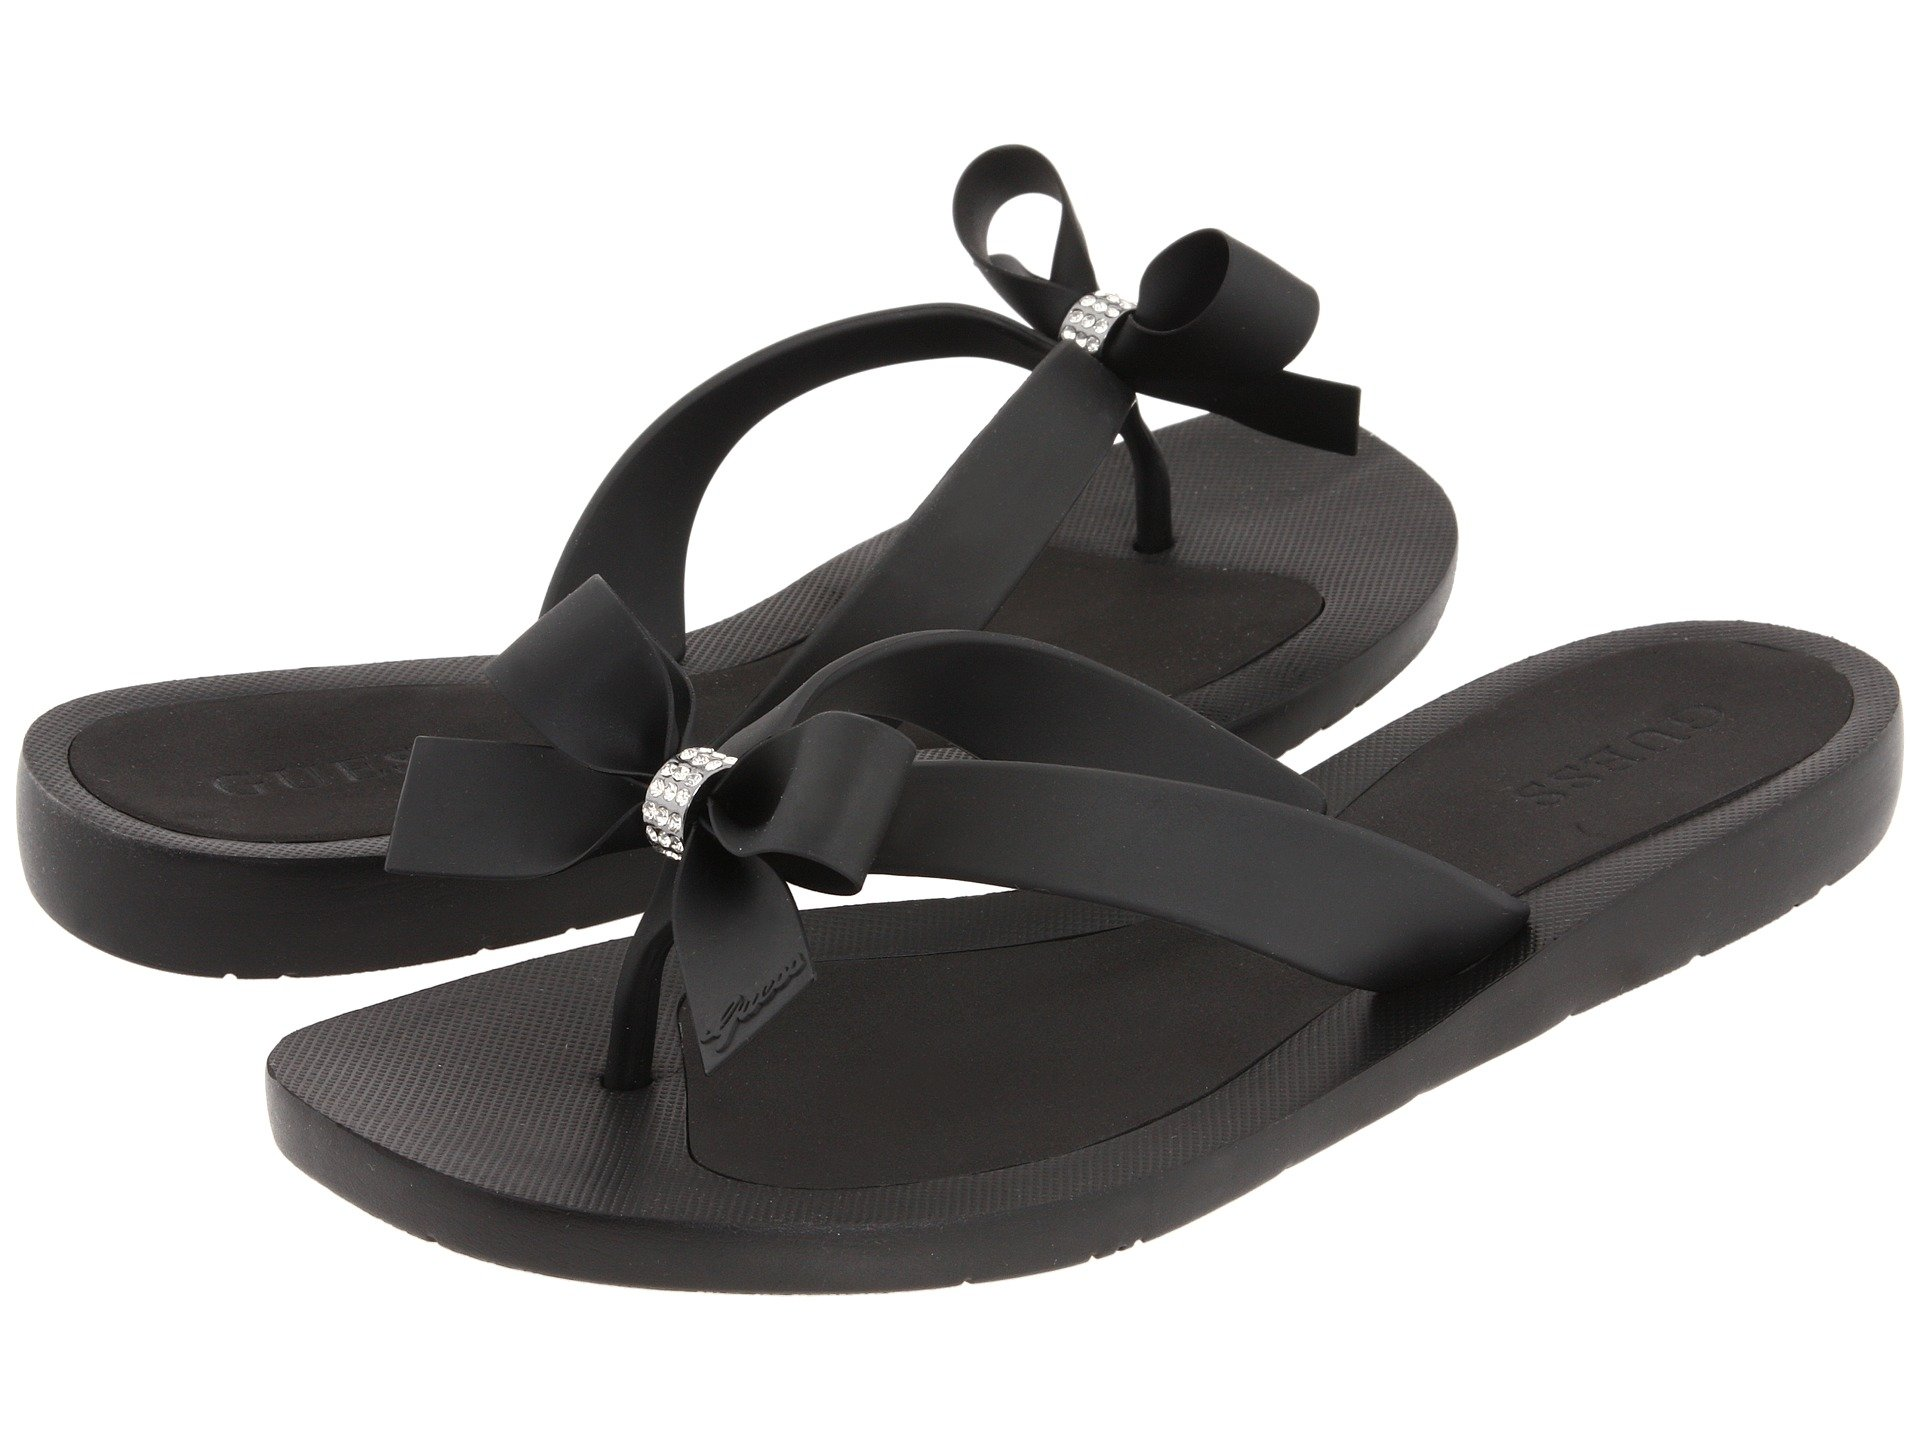 a4c668319 Women s GUESS Sandals + FREE SHIPPING